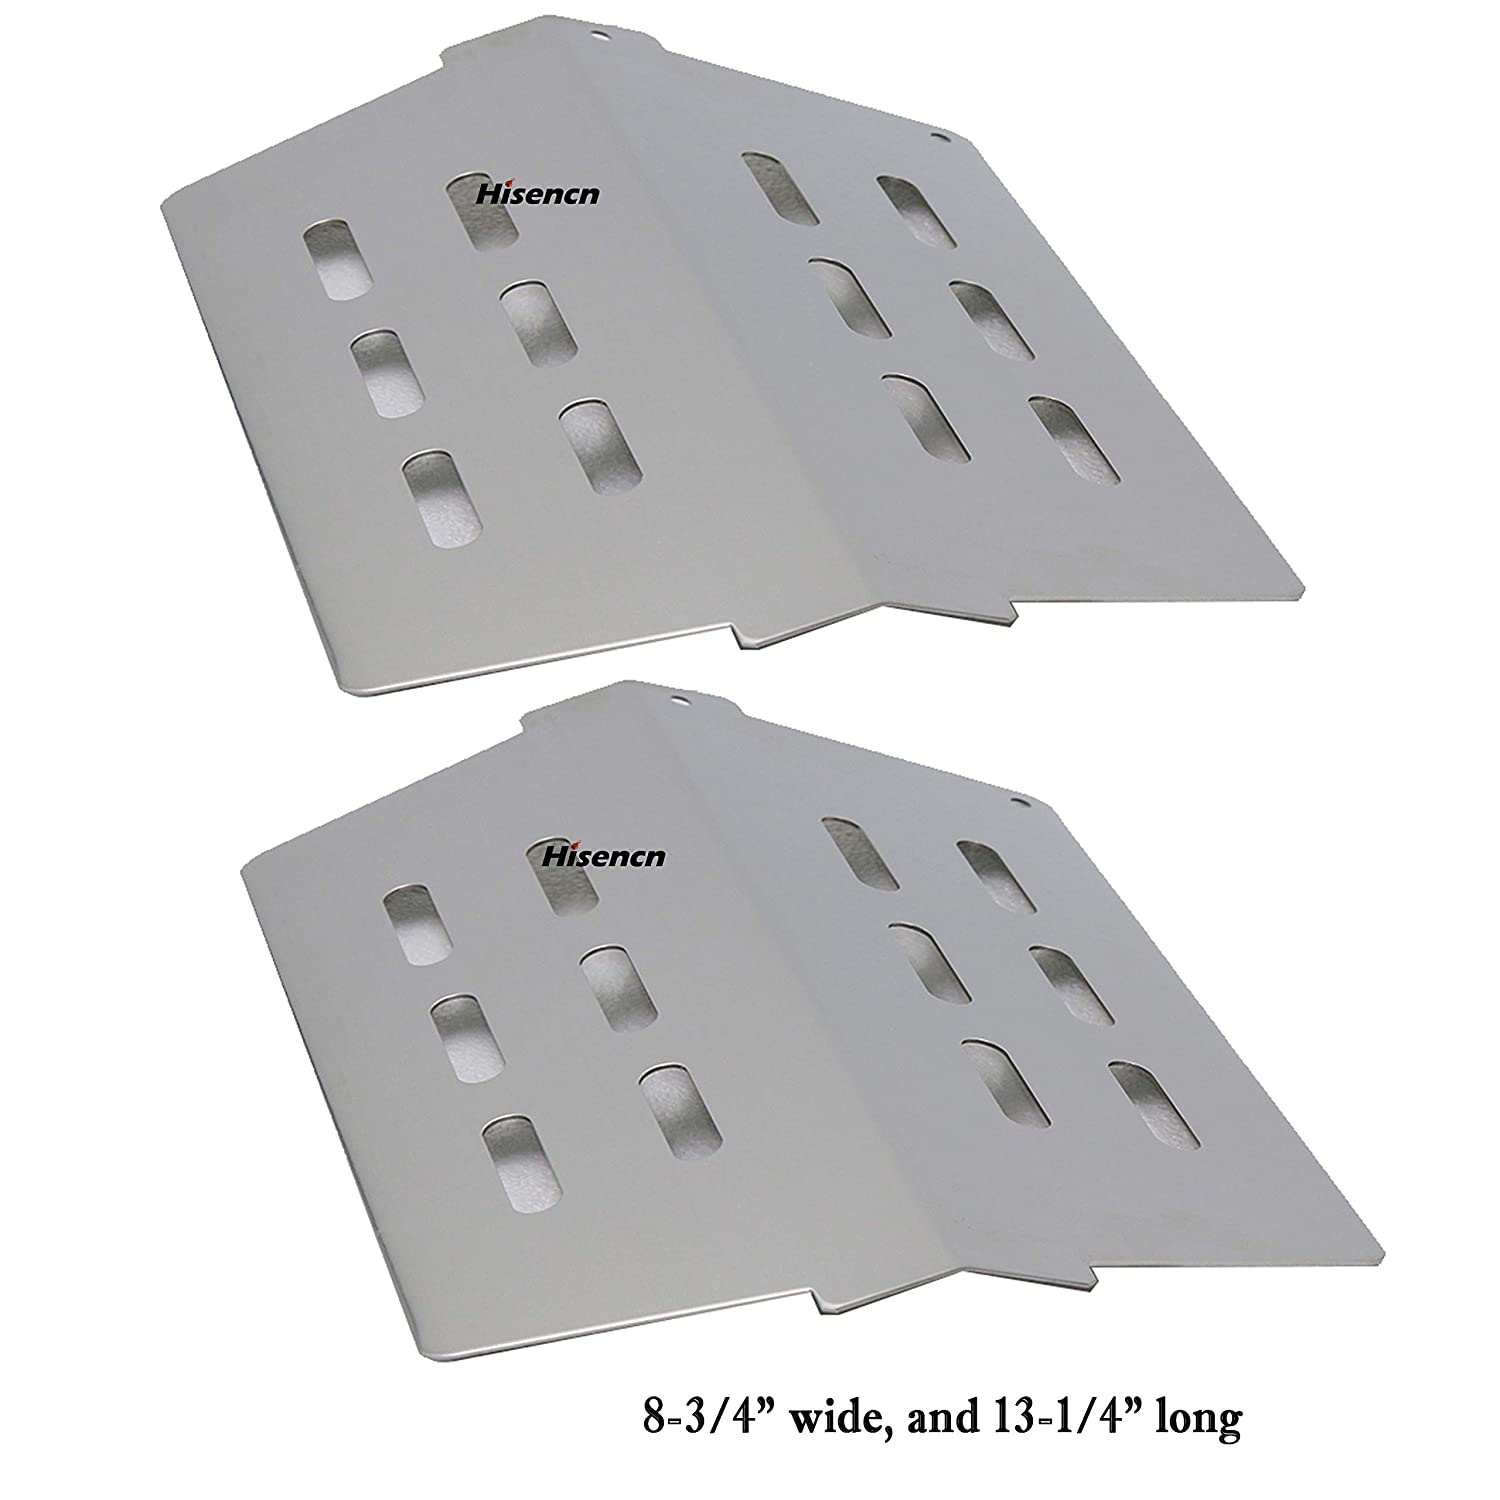 """Hisencn Heat Deflector Weber Genesis 300 (2011 & Newer Model) Front Mounted Control Panels, Flavorizer Bar, Heat Plate, Burner Cover Replacement 7622 (13 1/4"""" X 8 3/4) (2 Pack) H702622"""